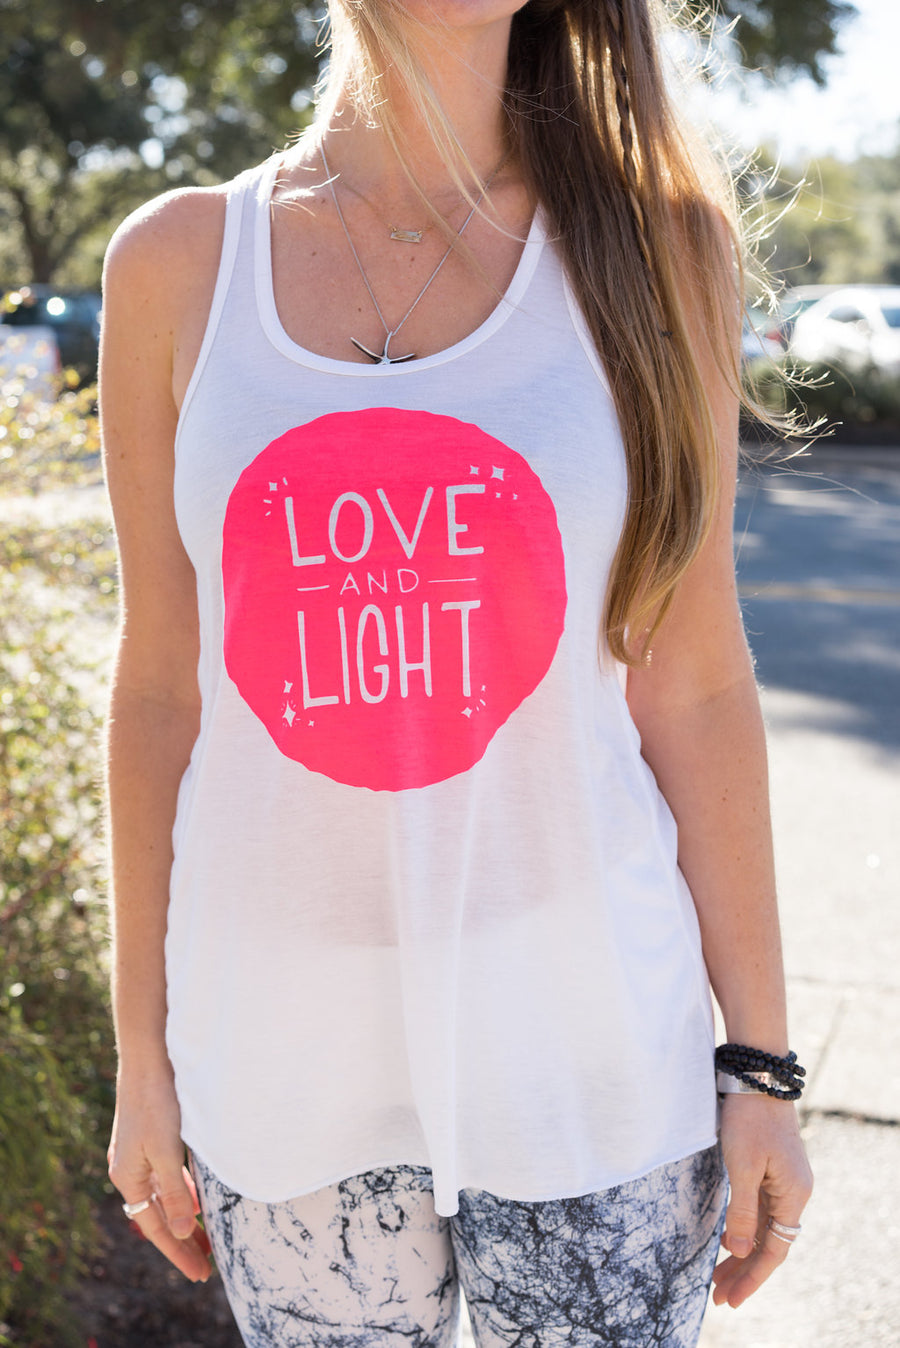 Blacklight Yoga Glow Tank | love and light - Inspired by Stephanie Rose